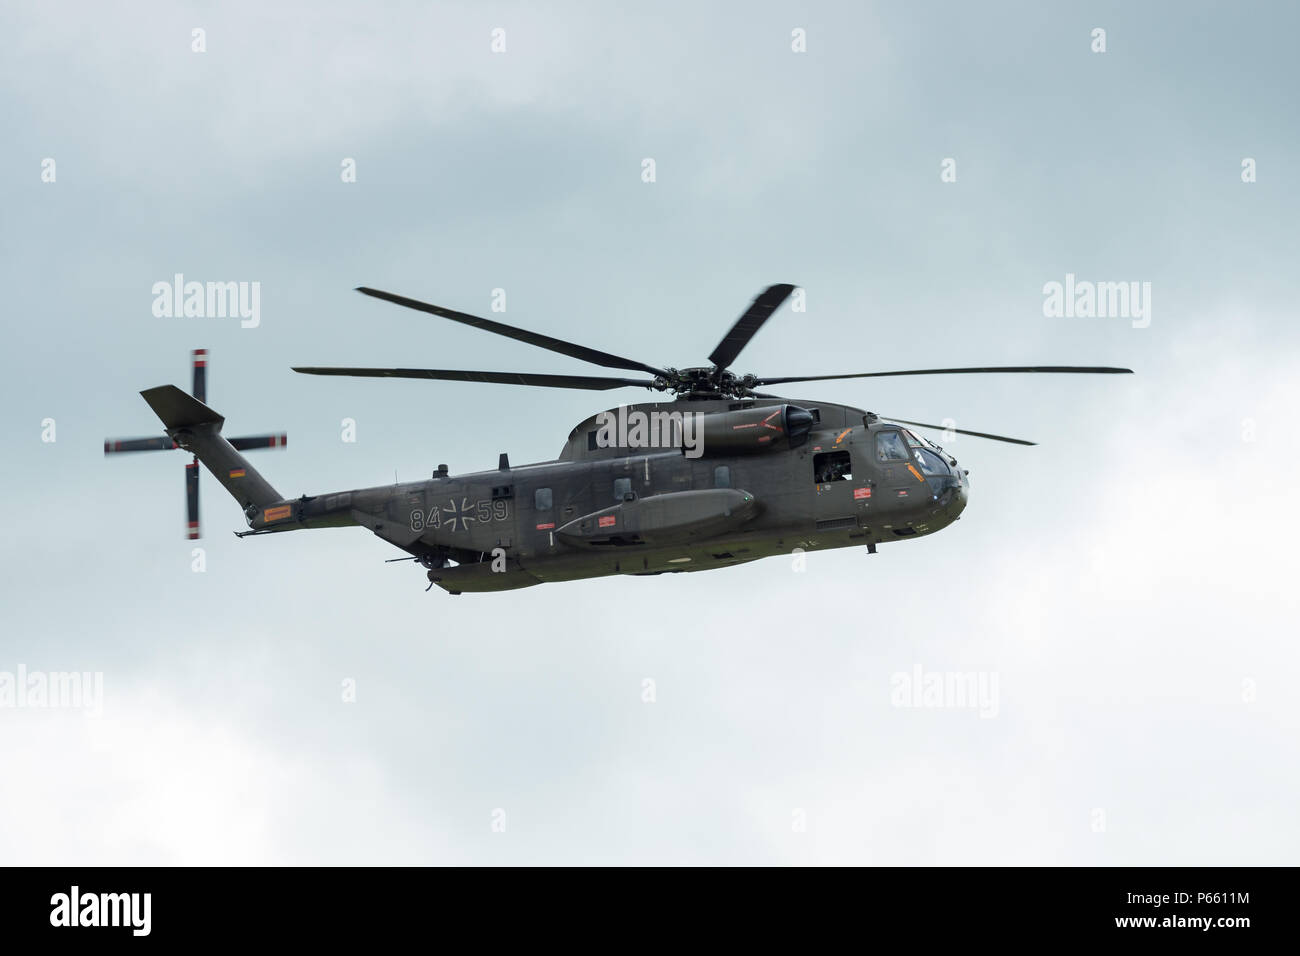 Demonstration flight of the medium utility military helicopter NHIndustries NH90. German Air Force. Exhibition ILA Berlin Air Show 2018. - Stock Image